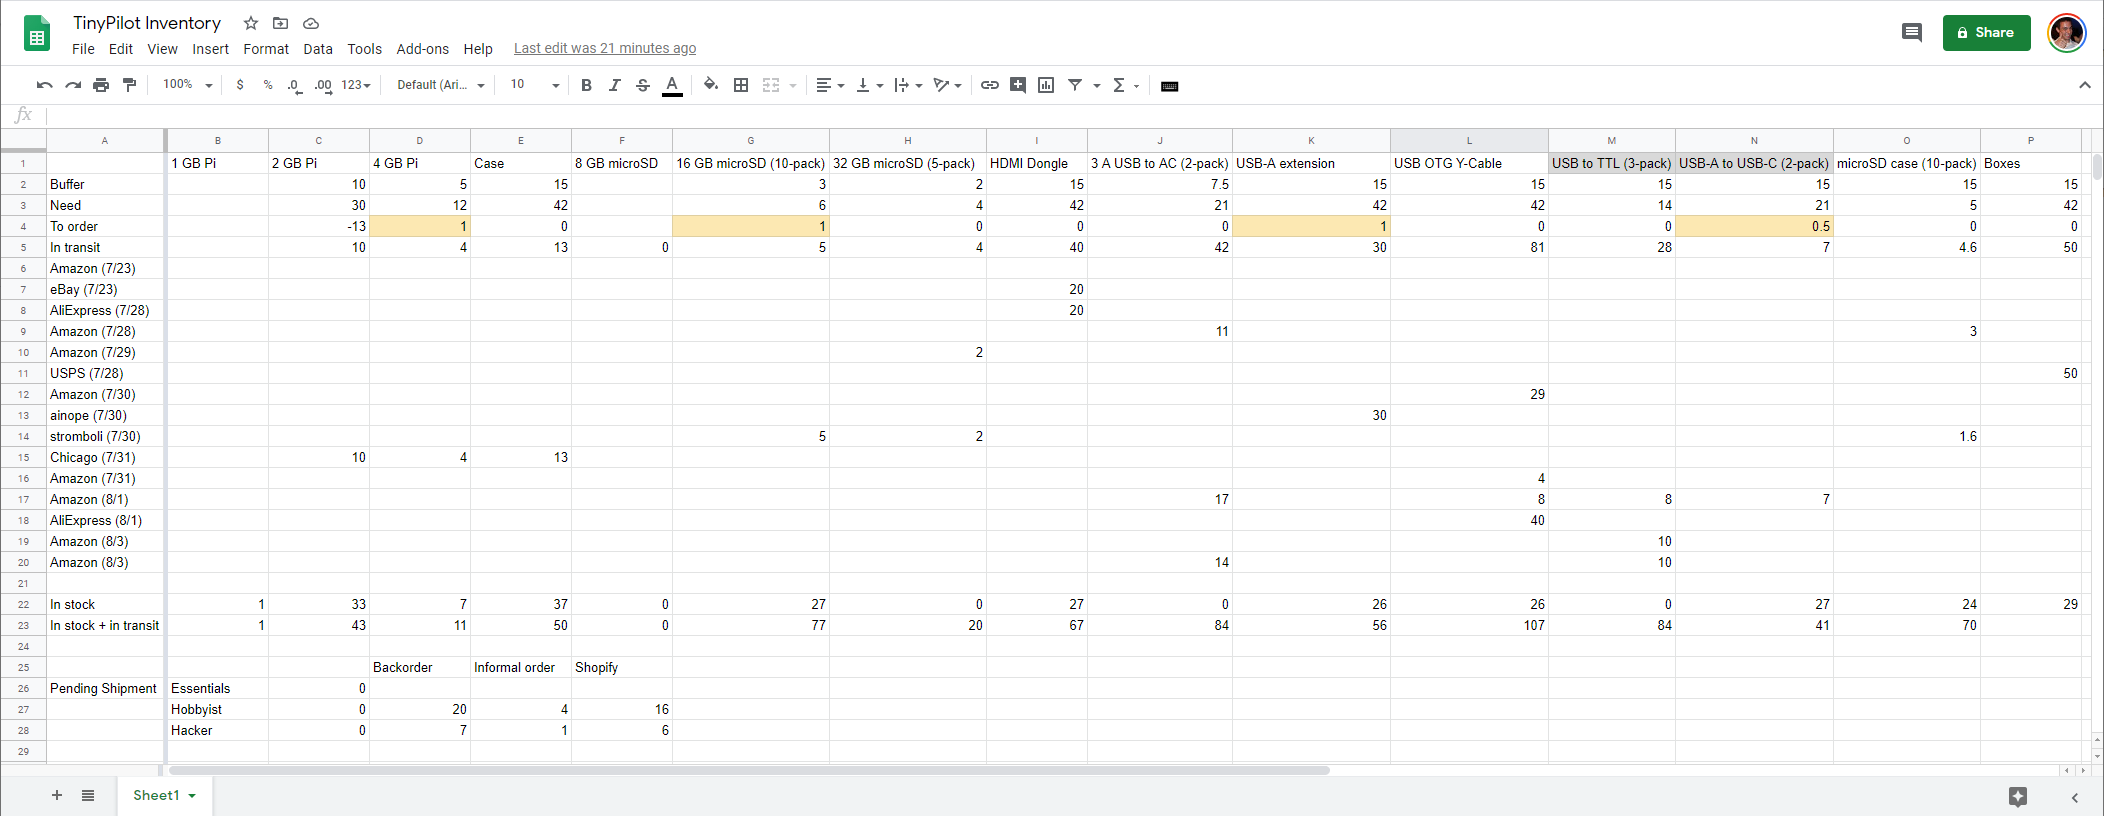 Screenshot of old, cluttered inventory spreadsheet